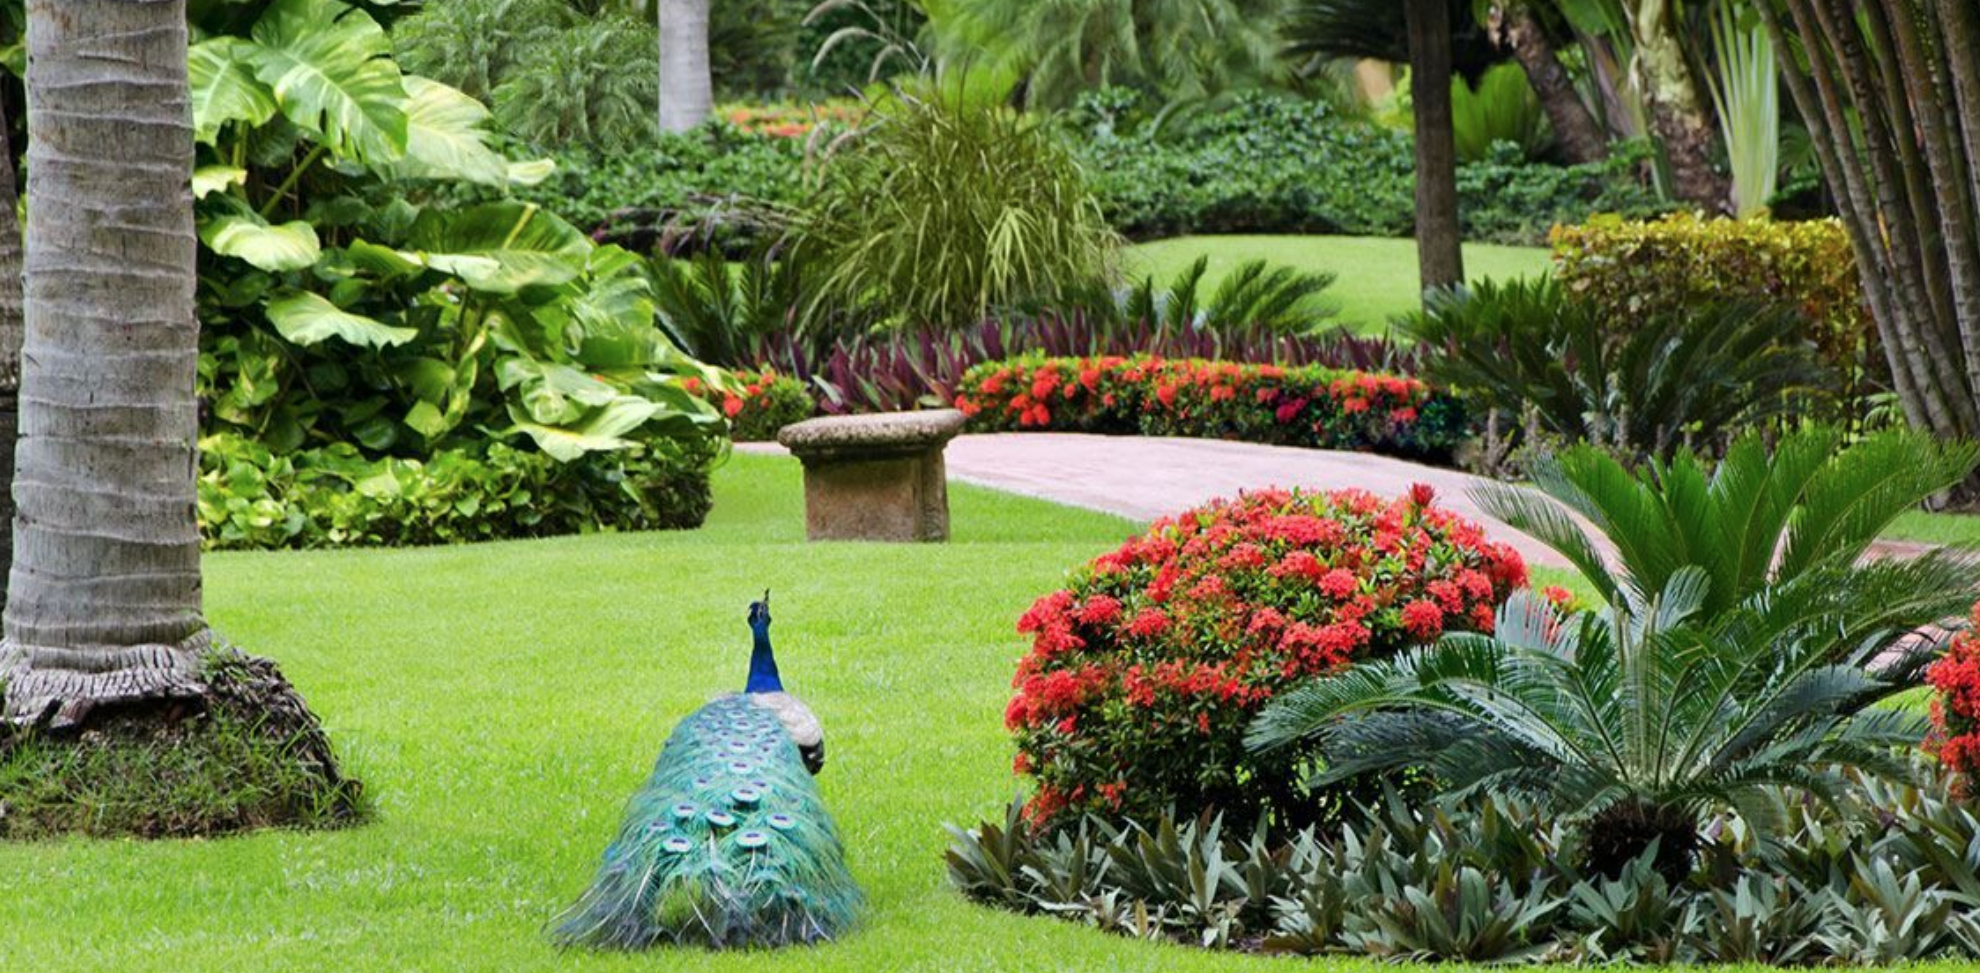 The lush gardens of Velas Vallarta Resort in Puerto Vallarta, Mexico, feature a variety of lush tropical trees and flora, and you'll even find beautiful peacocks roaming the property.